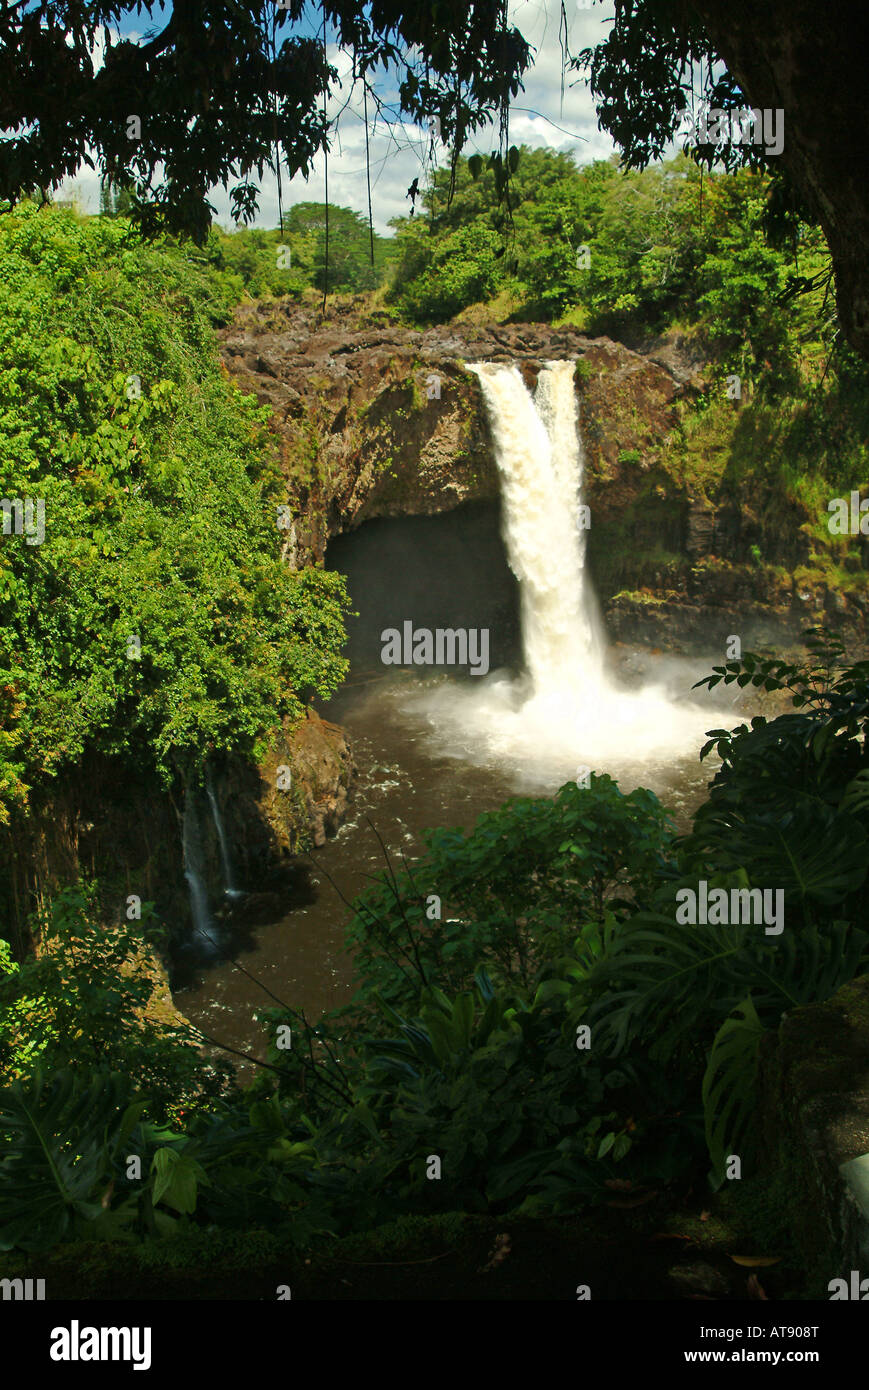 Aunuenue falls, commonly known as Rainbow falls, near Hilo on the Big island of Hawaii Stock Photo